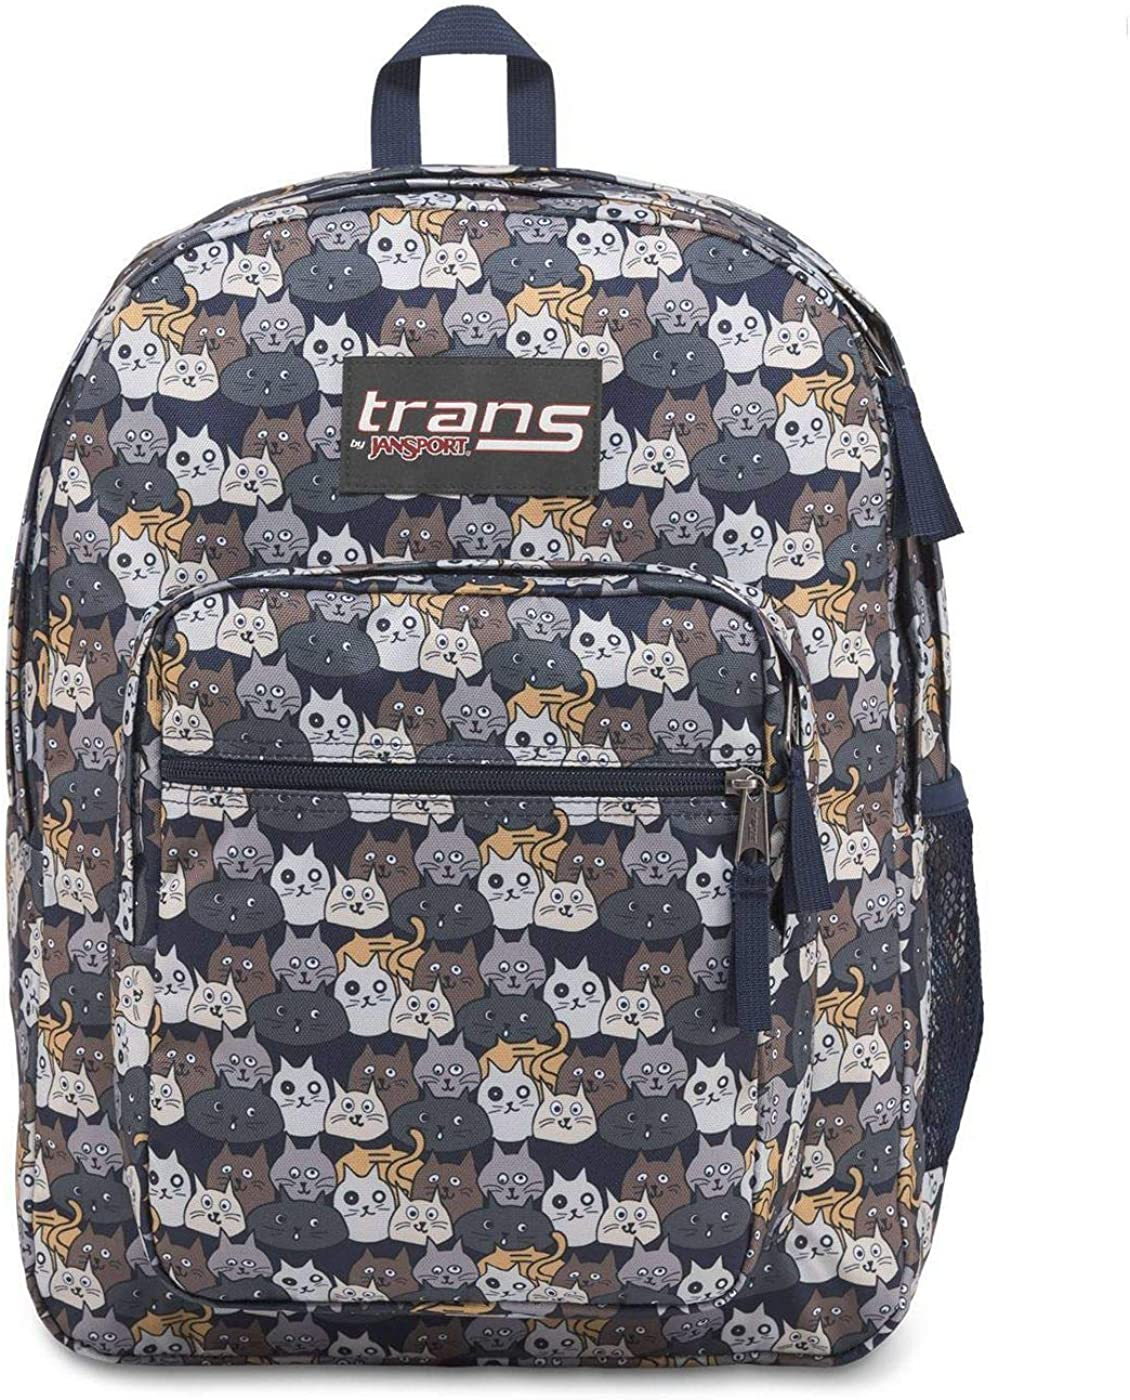 Trans by JanSport 17 SuperMax Cute Cats School Backpack with 15 Laptop Sleeve, Catty Crowd, 2,200 cu in